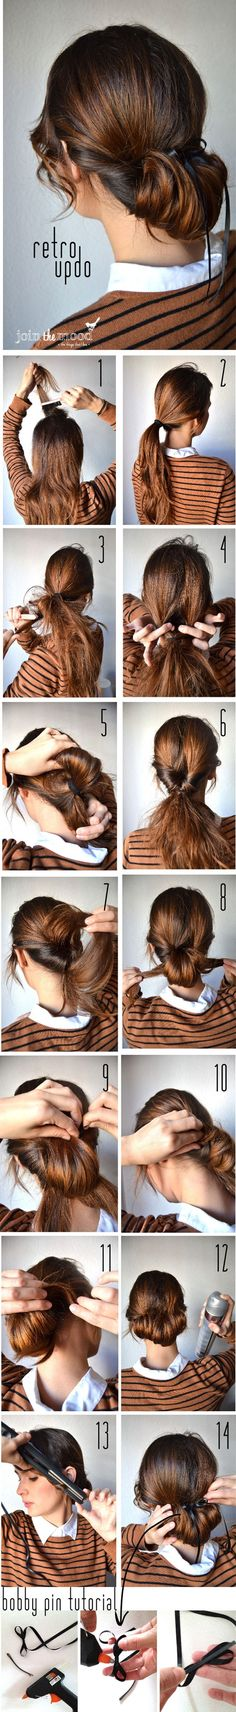 GirlsGuideTo | 5 Lazy-Weekend Worthy Hairstyles | GirlsGuideTo